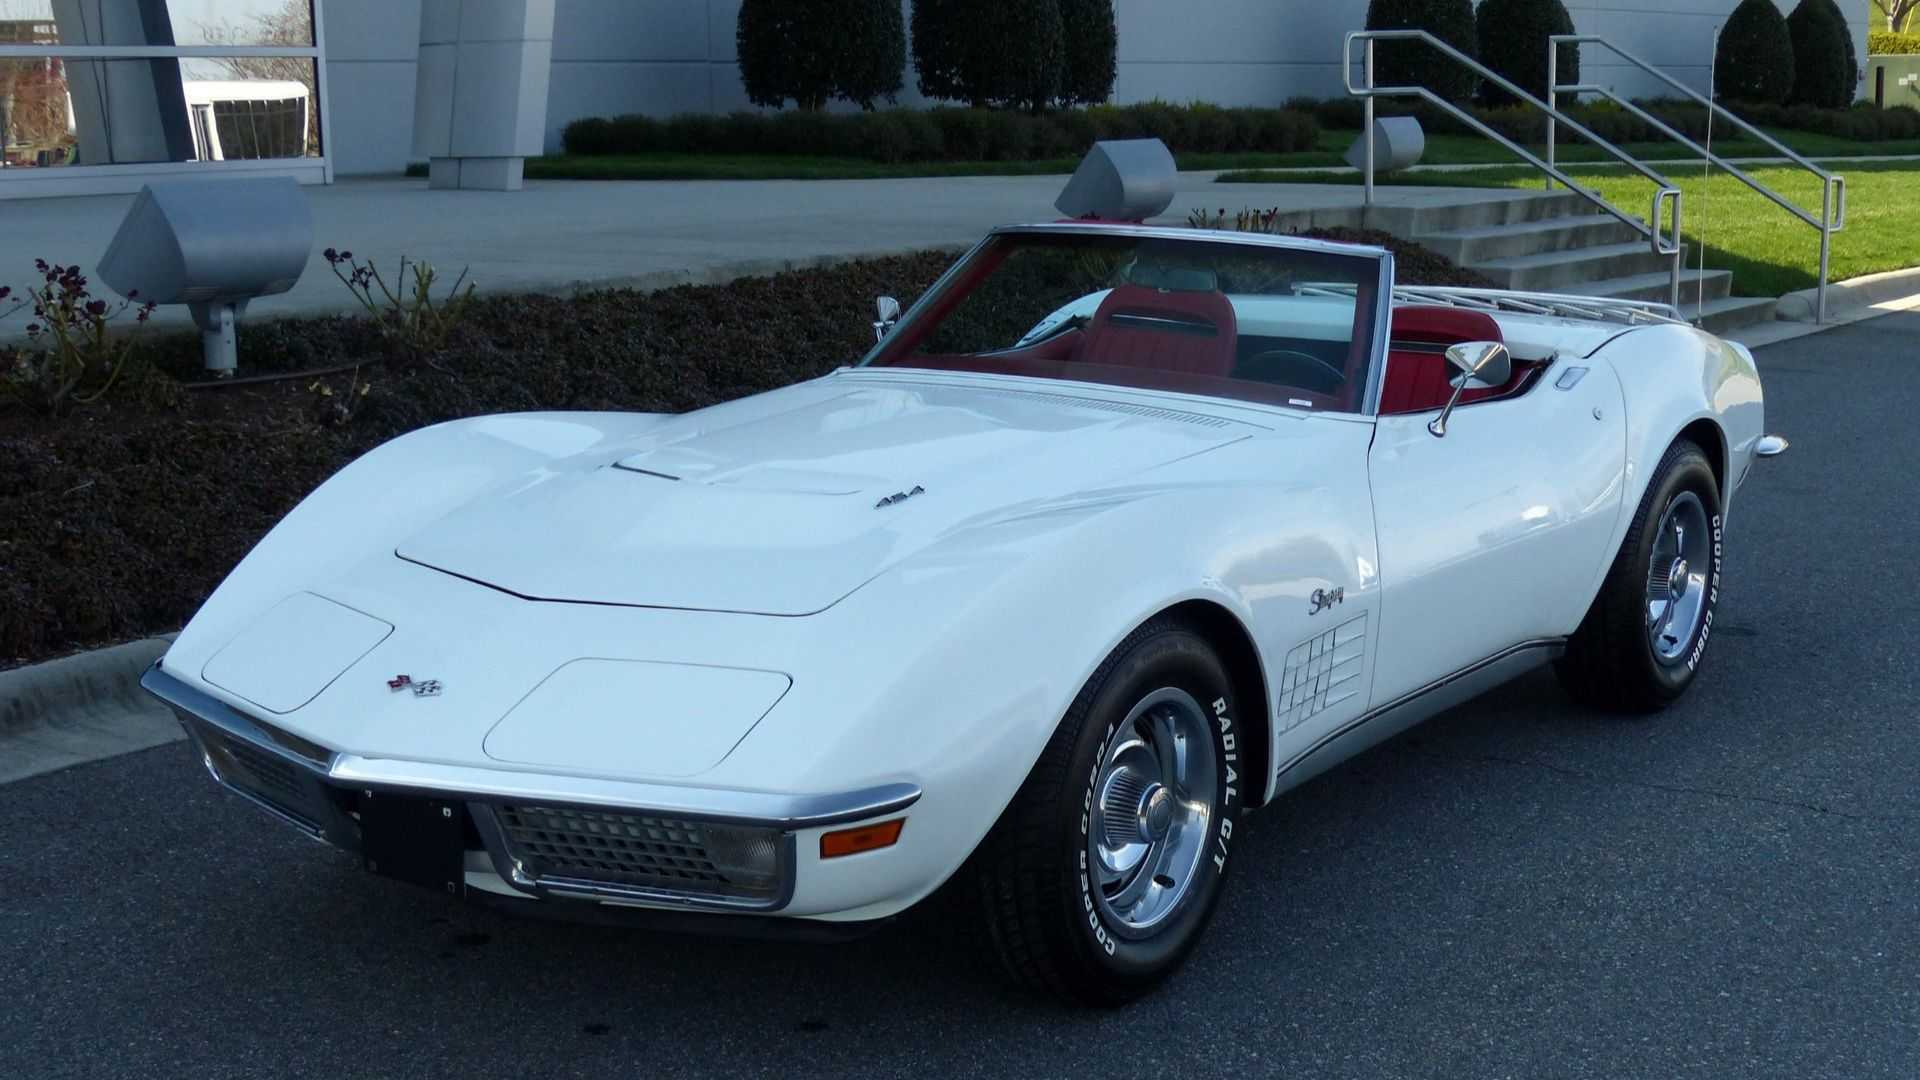 1971 Chevrolet Corvette Heads To Auction With No Reserve Feedimo